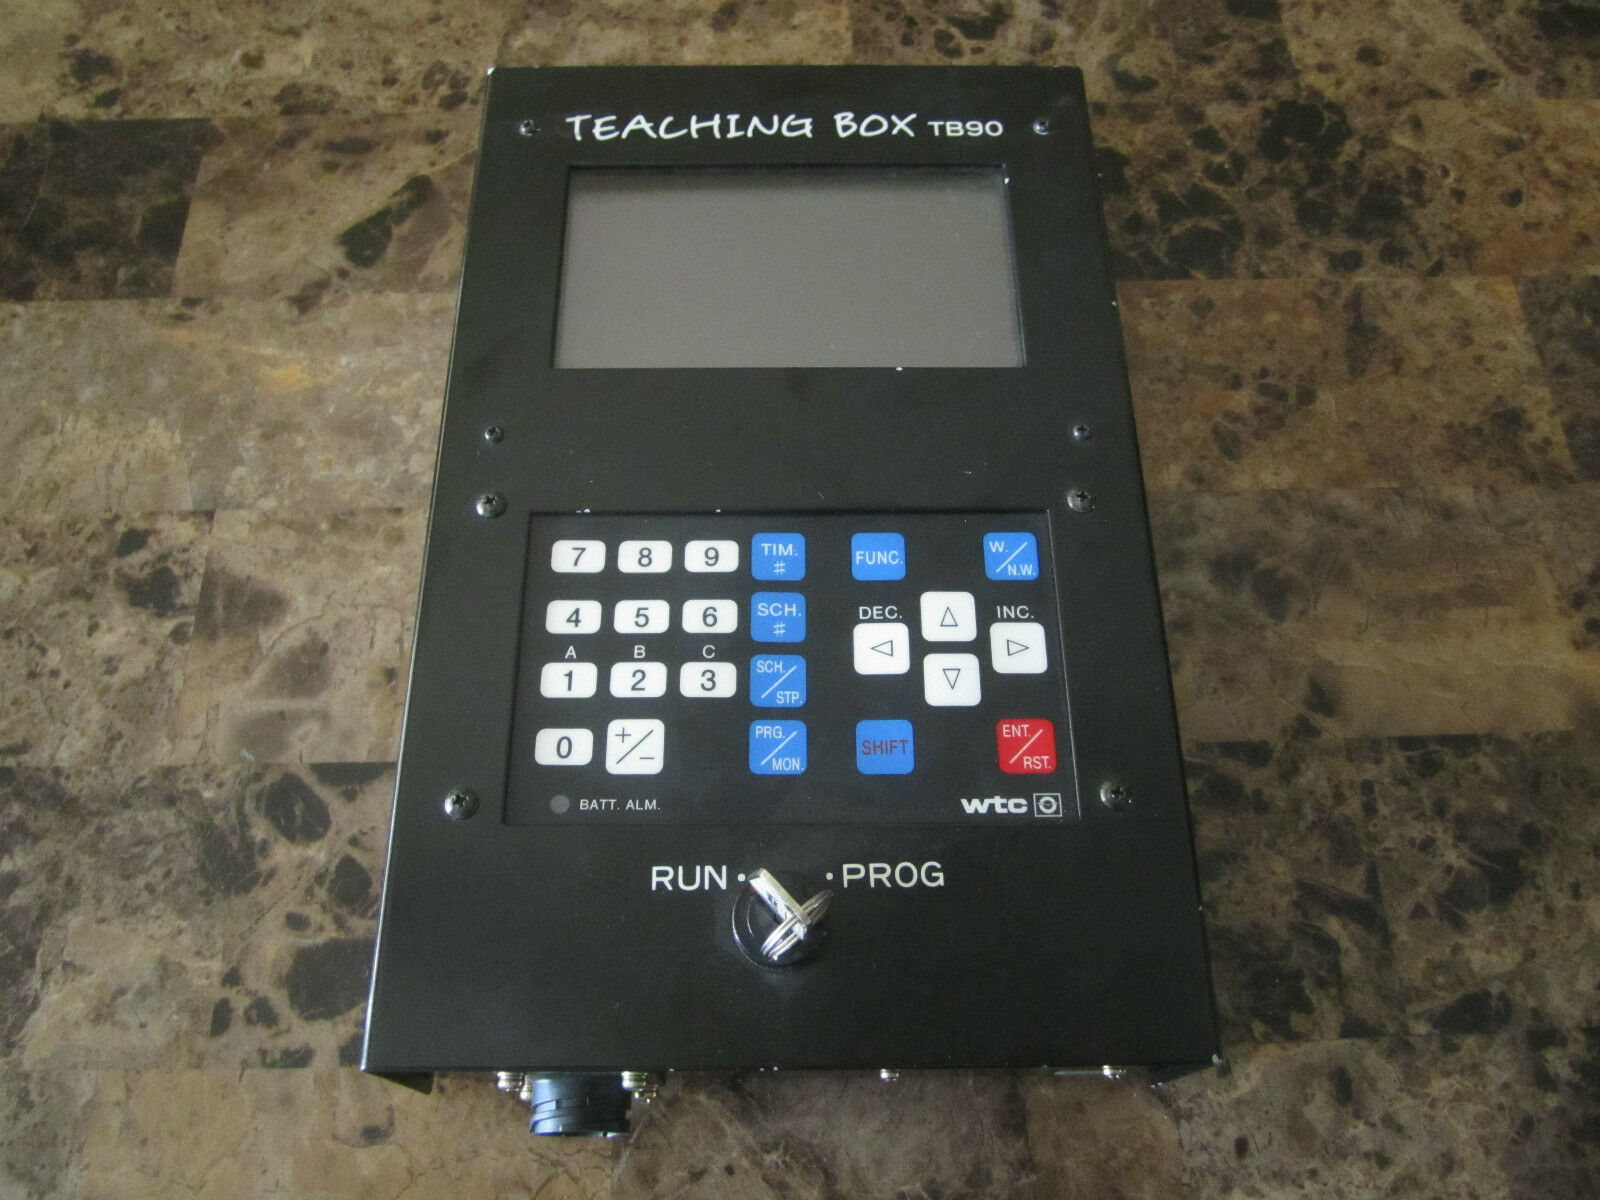 WELTRONIC TEACHING BOX TB90 P02A PROGRAM NO S79 V1.7 WTC